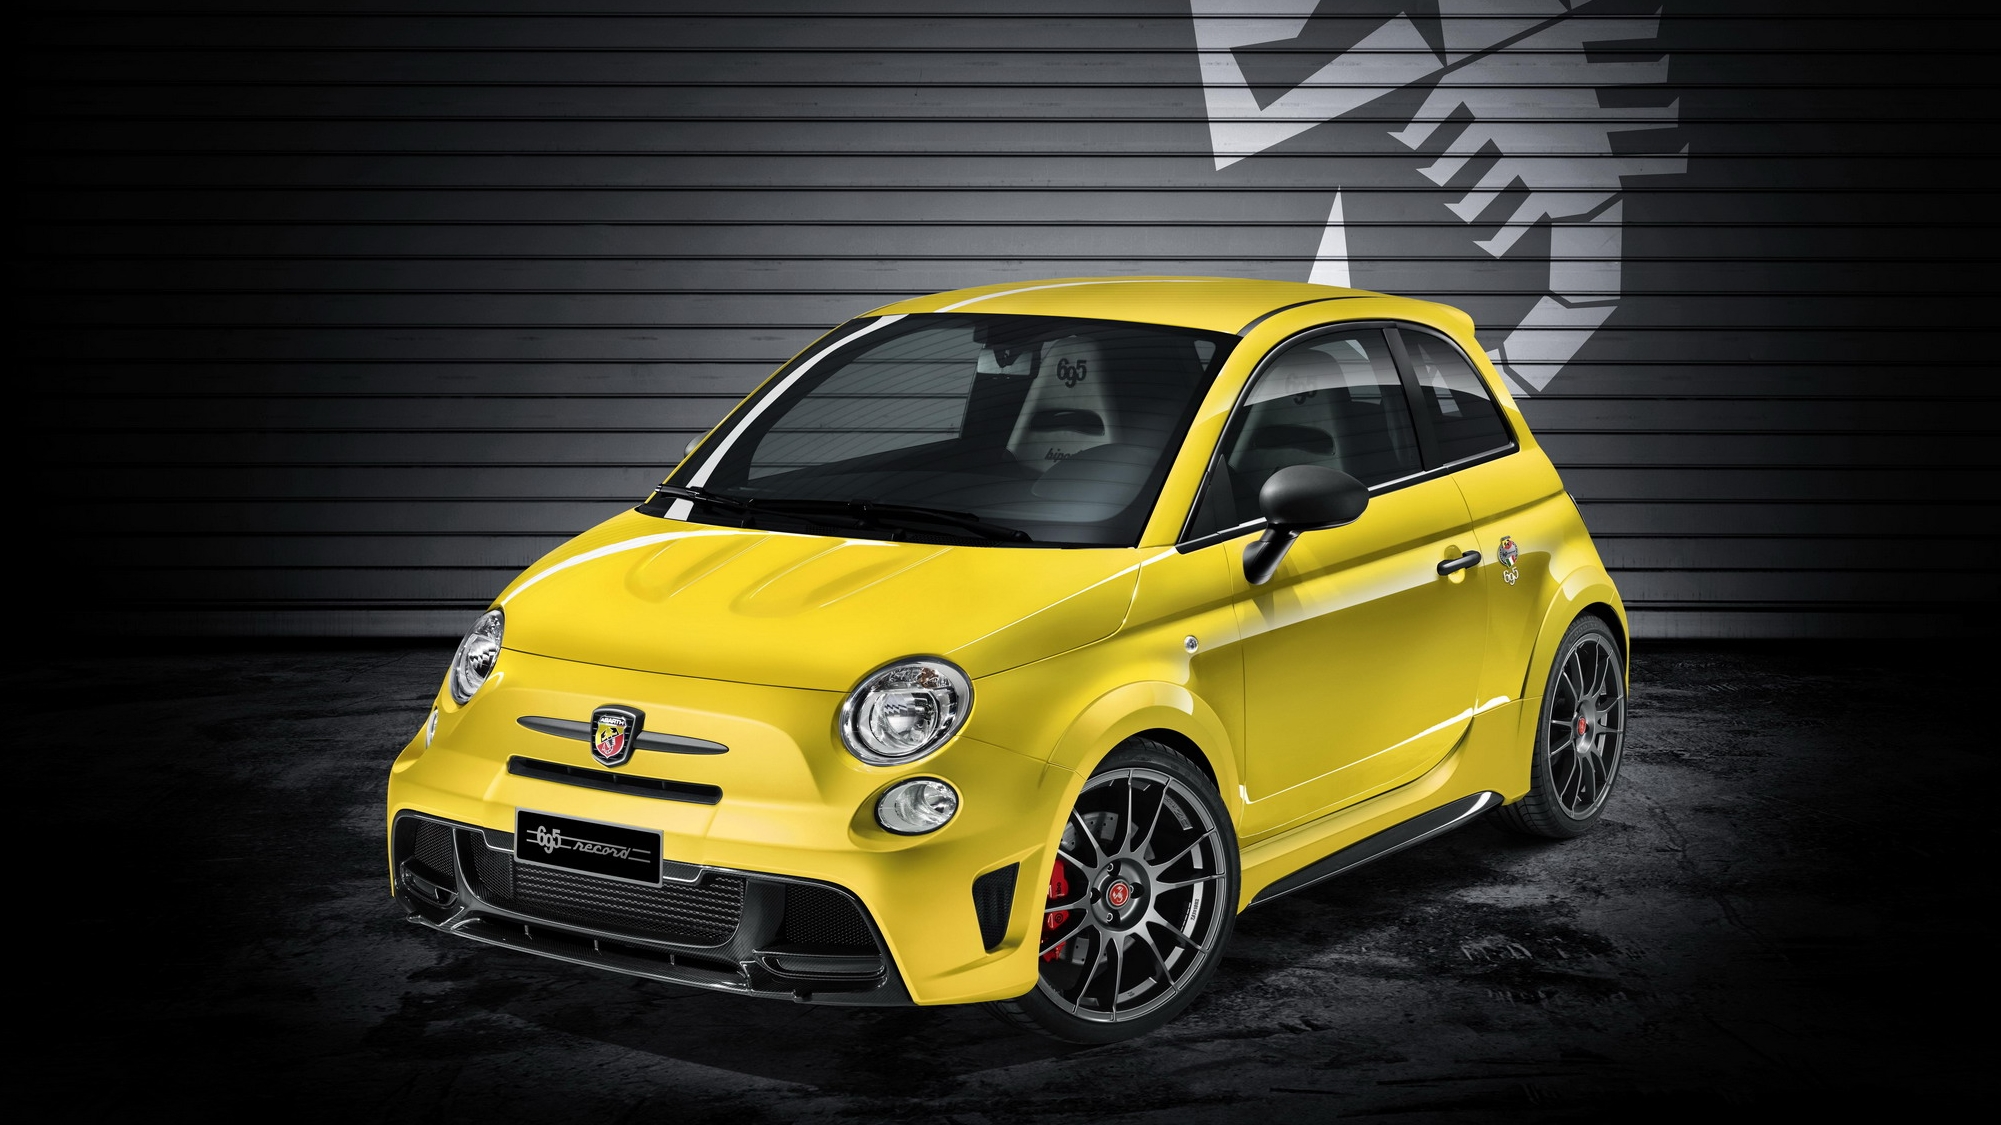 2016 abarth 695 biposto record review - top speed